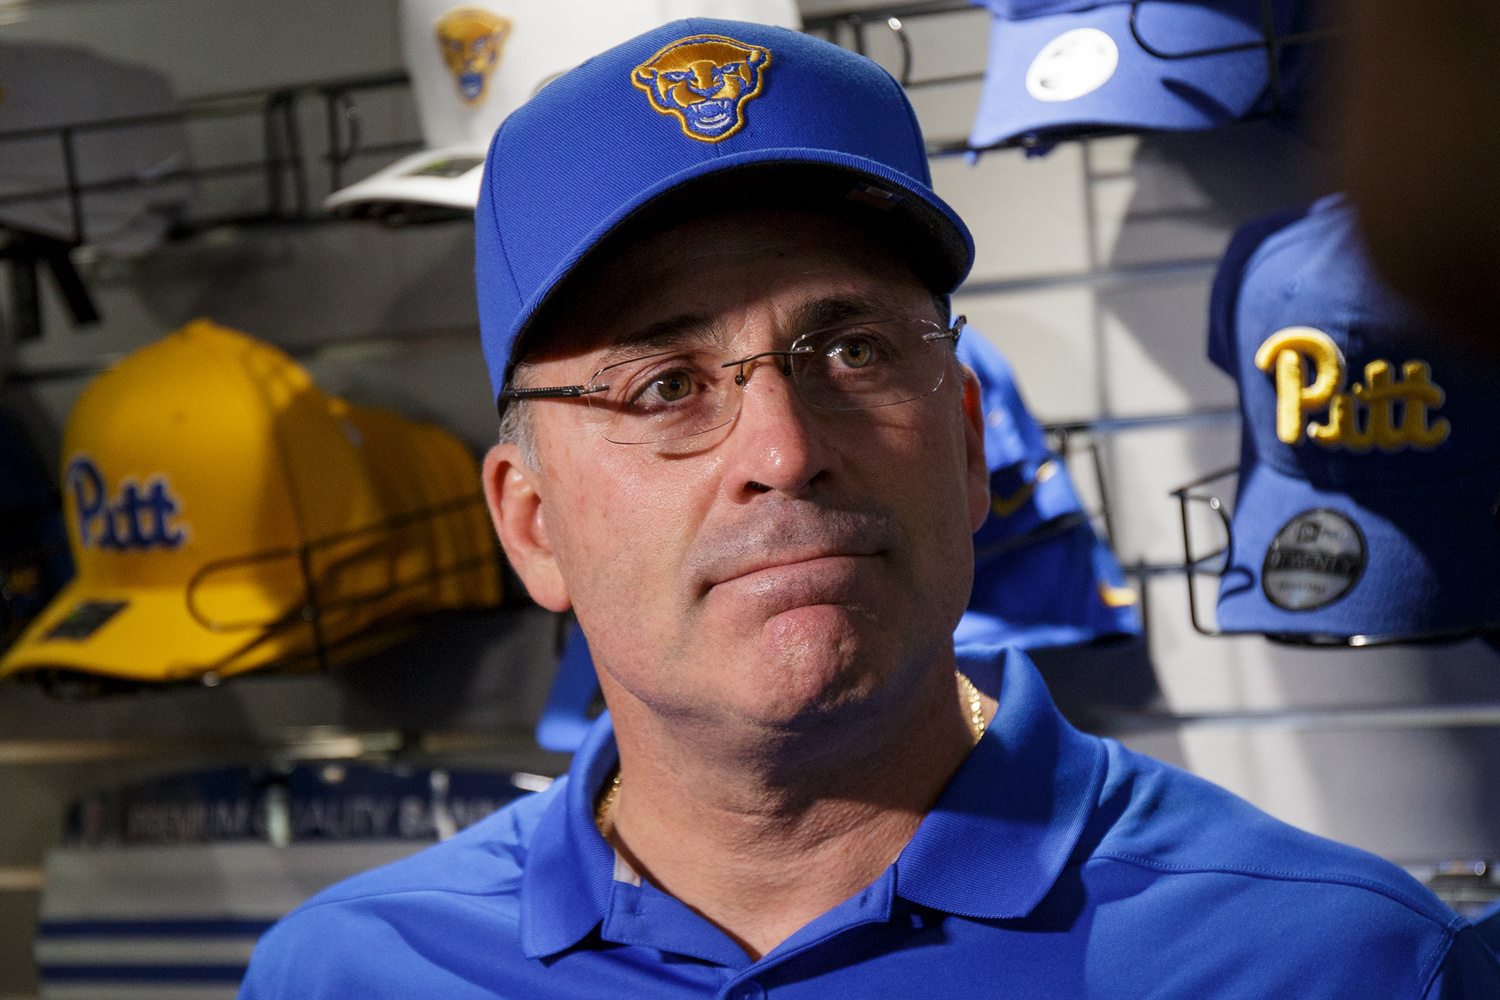 Coach Narduzzi is the highest-paid non-officer employee at Pitt.